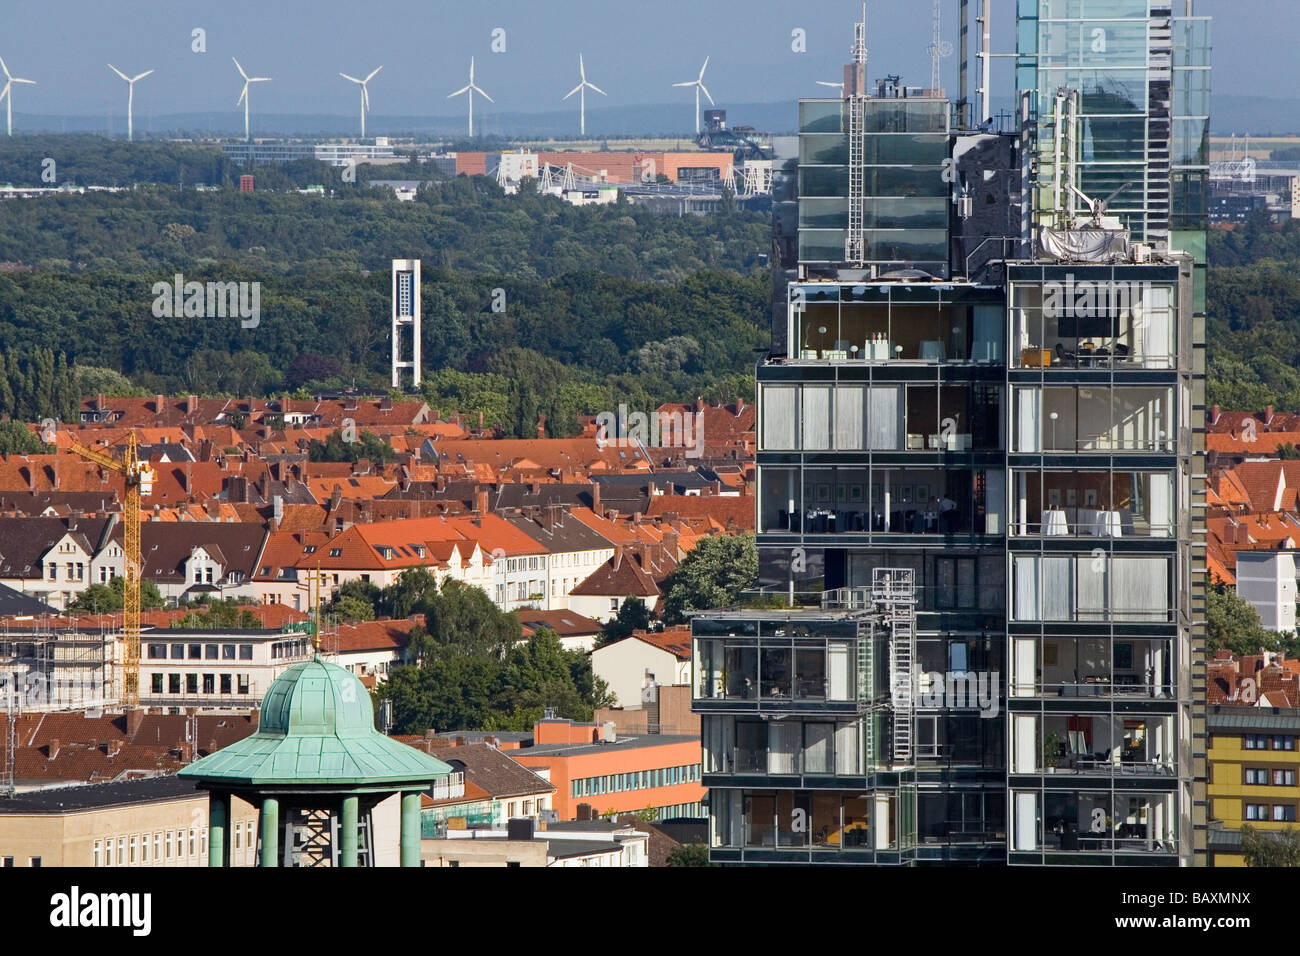 Hanover city centre, with view of the Nord LB Northern German Bank across the roofs of to the green city belt, and - Stock Image